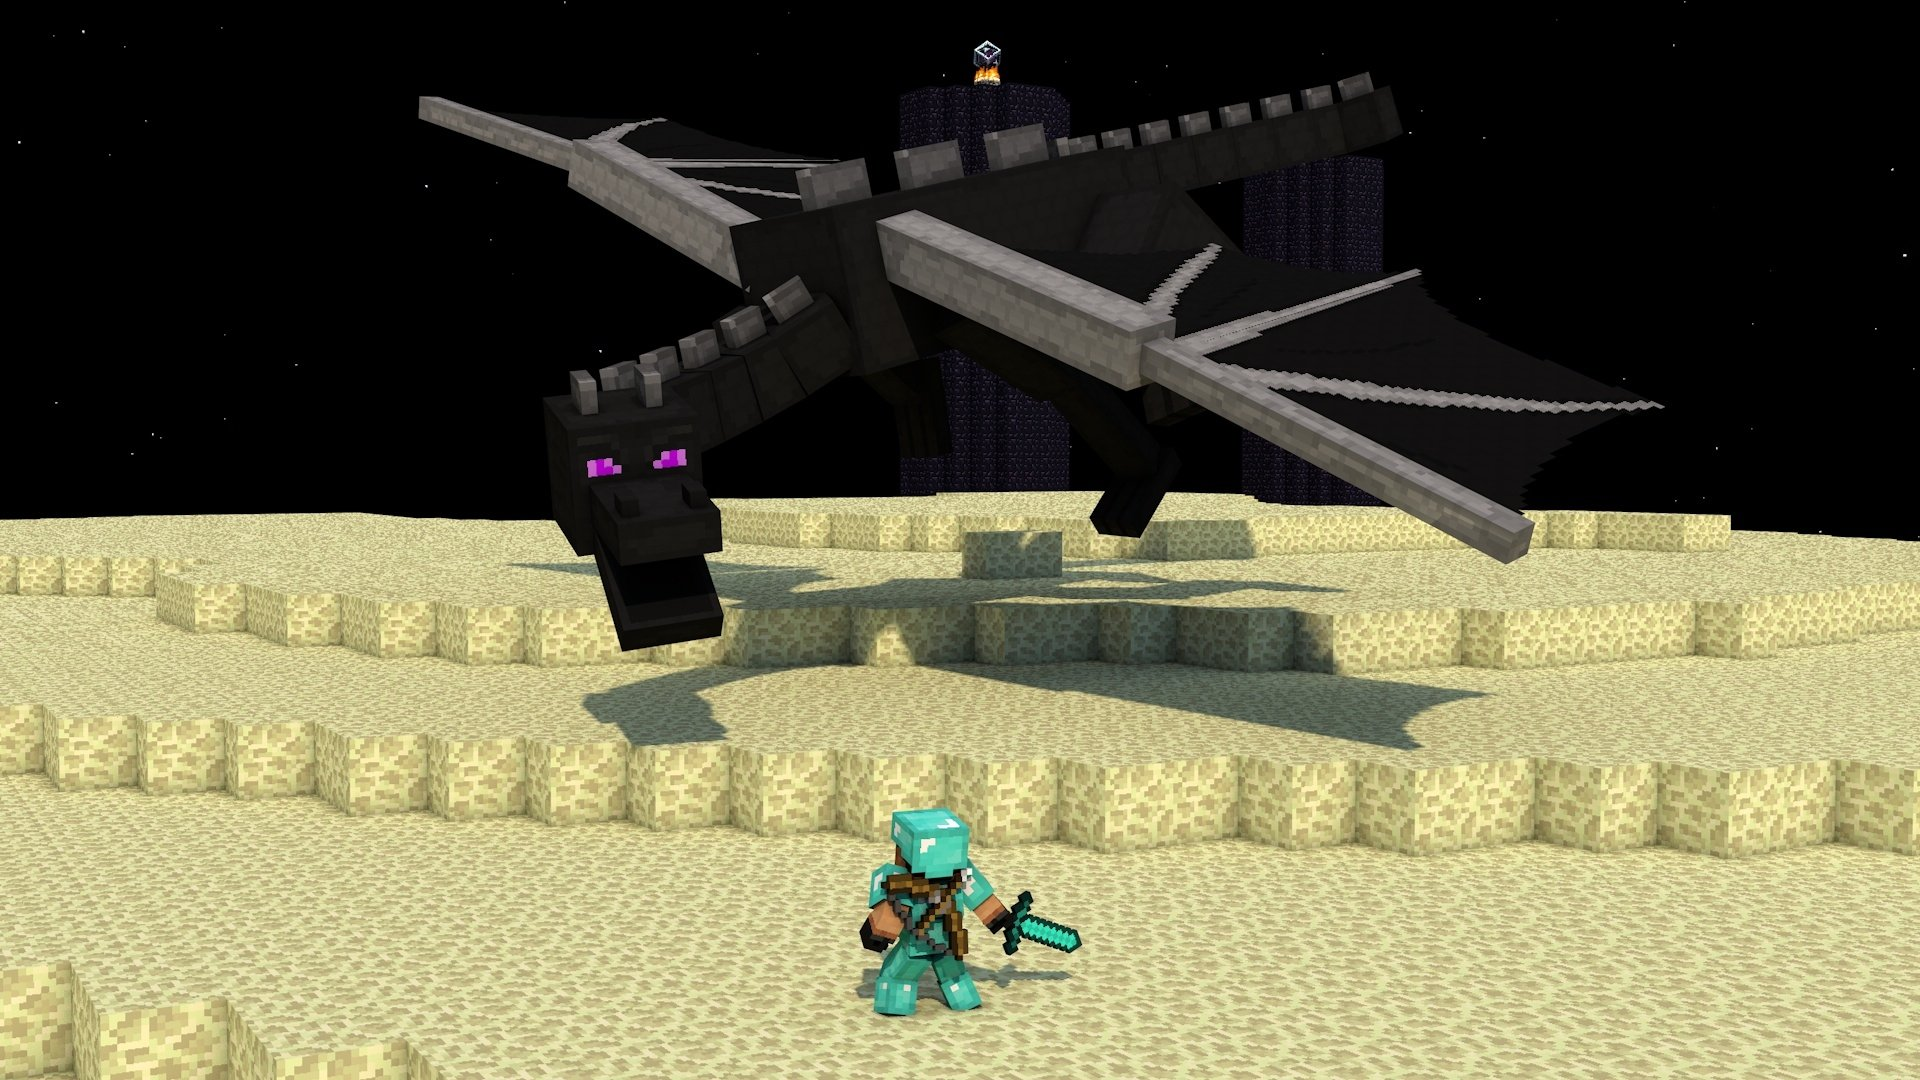 Video Game - Minecraft  Ender Dragon Dragon Mojang Video Game Wallpaper